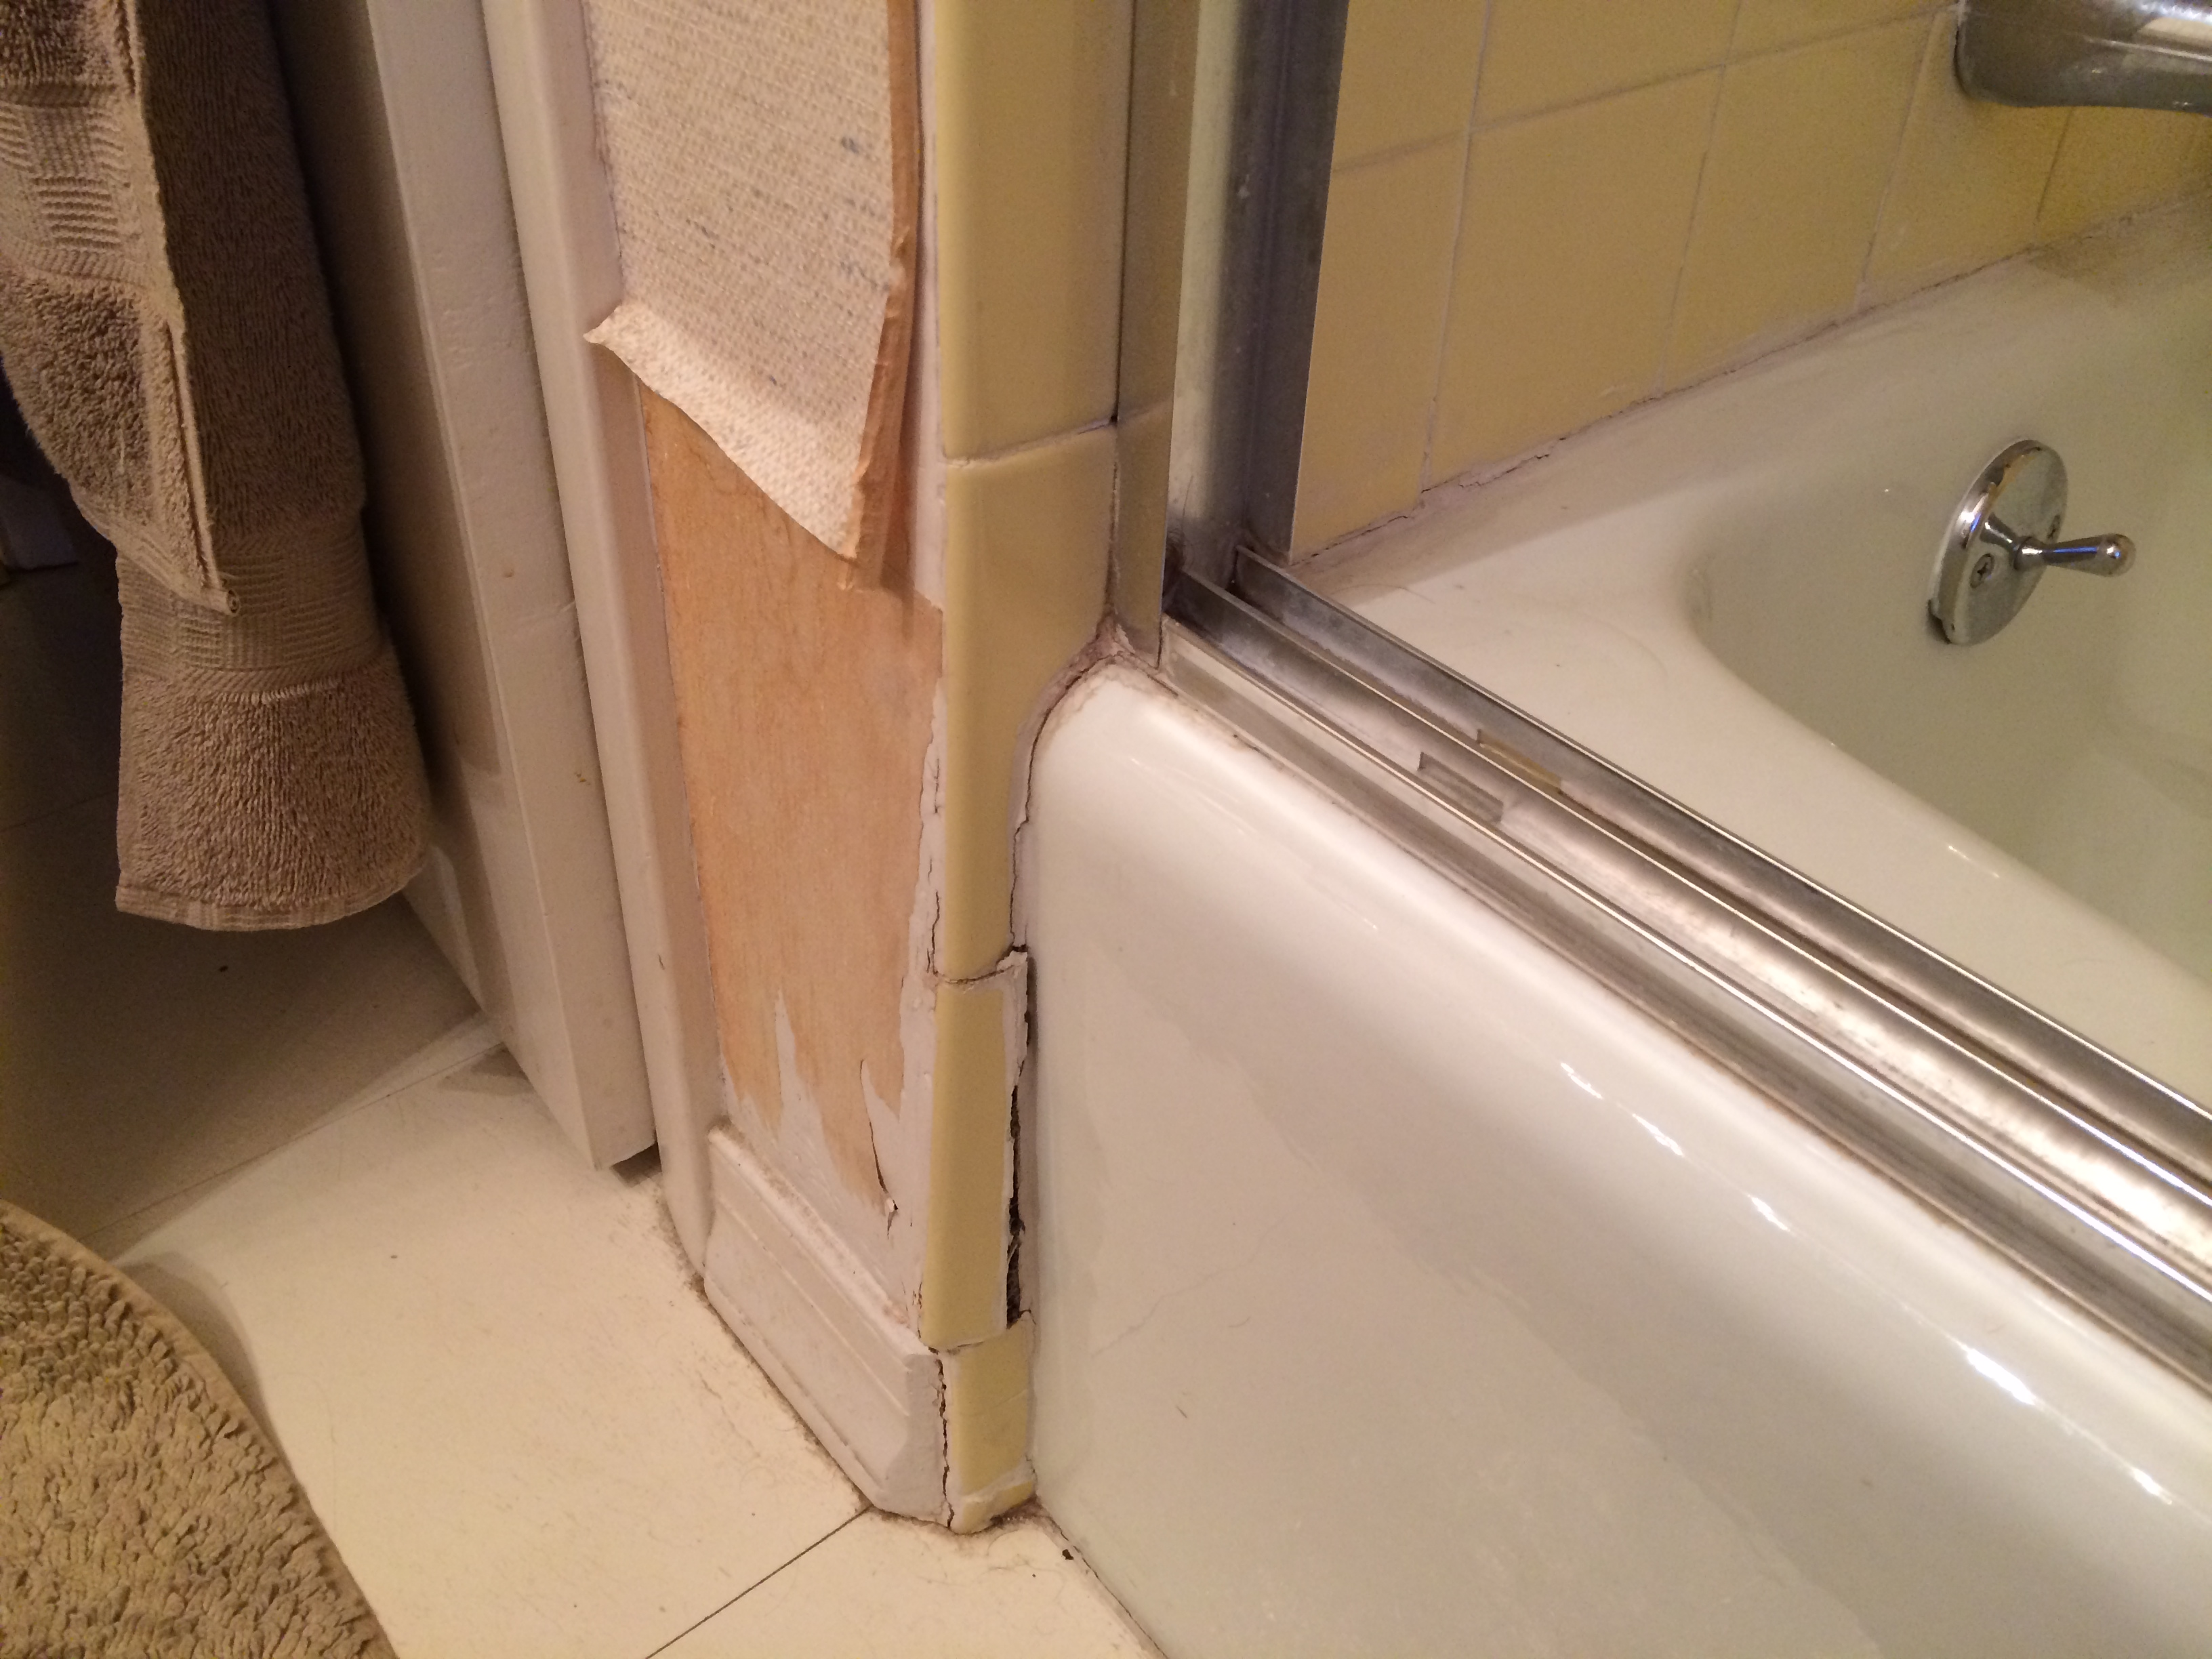 Repair Water Damage To Wall Near Bathtub Rose Creek Journey